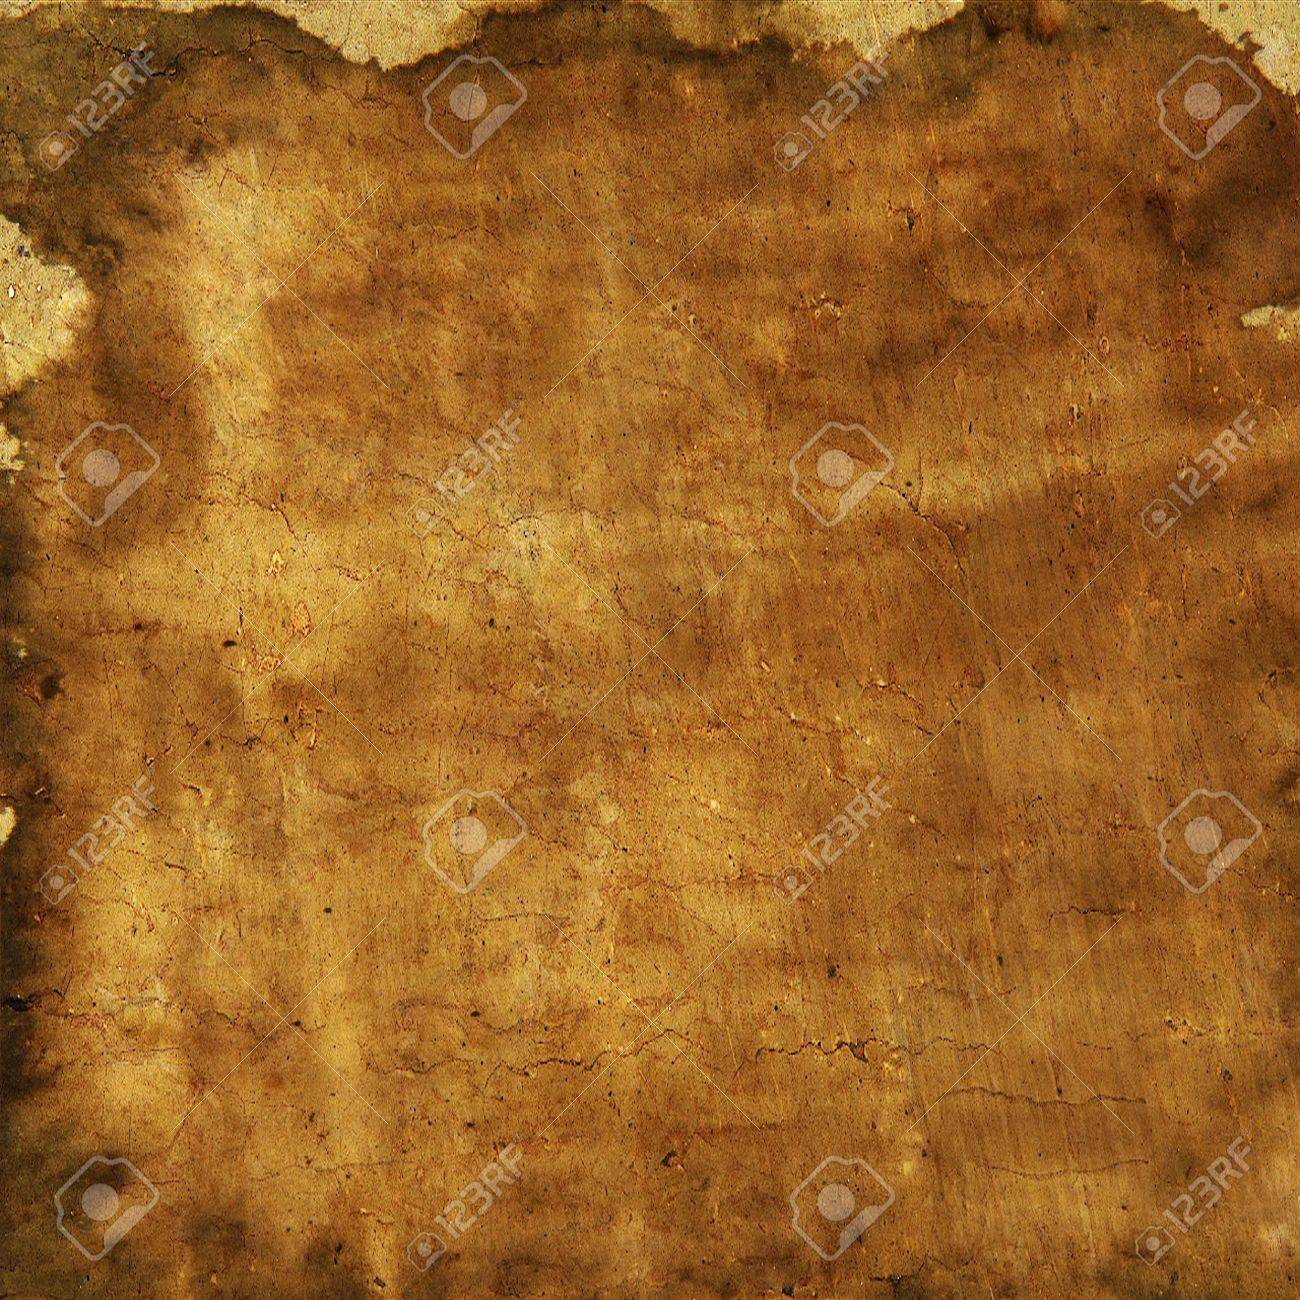 abstract brown or yellow colorful background or paper with grunge, Powerpoint templates